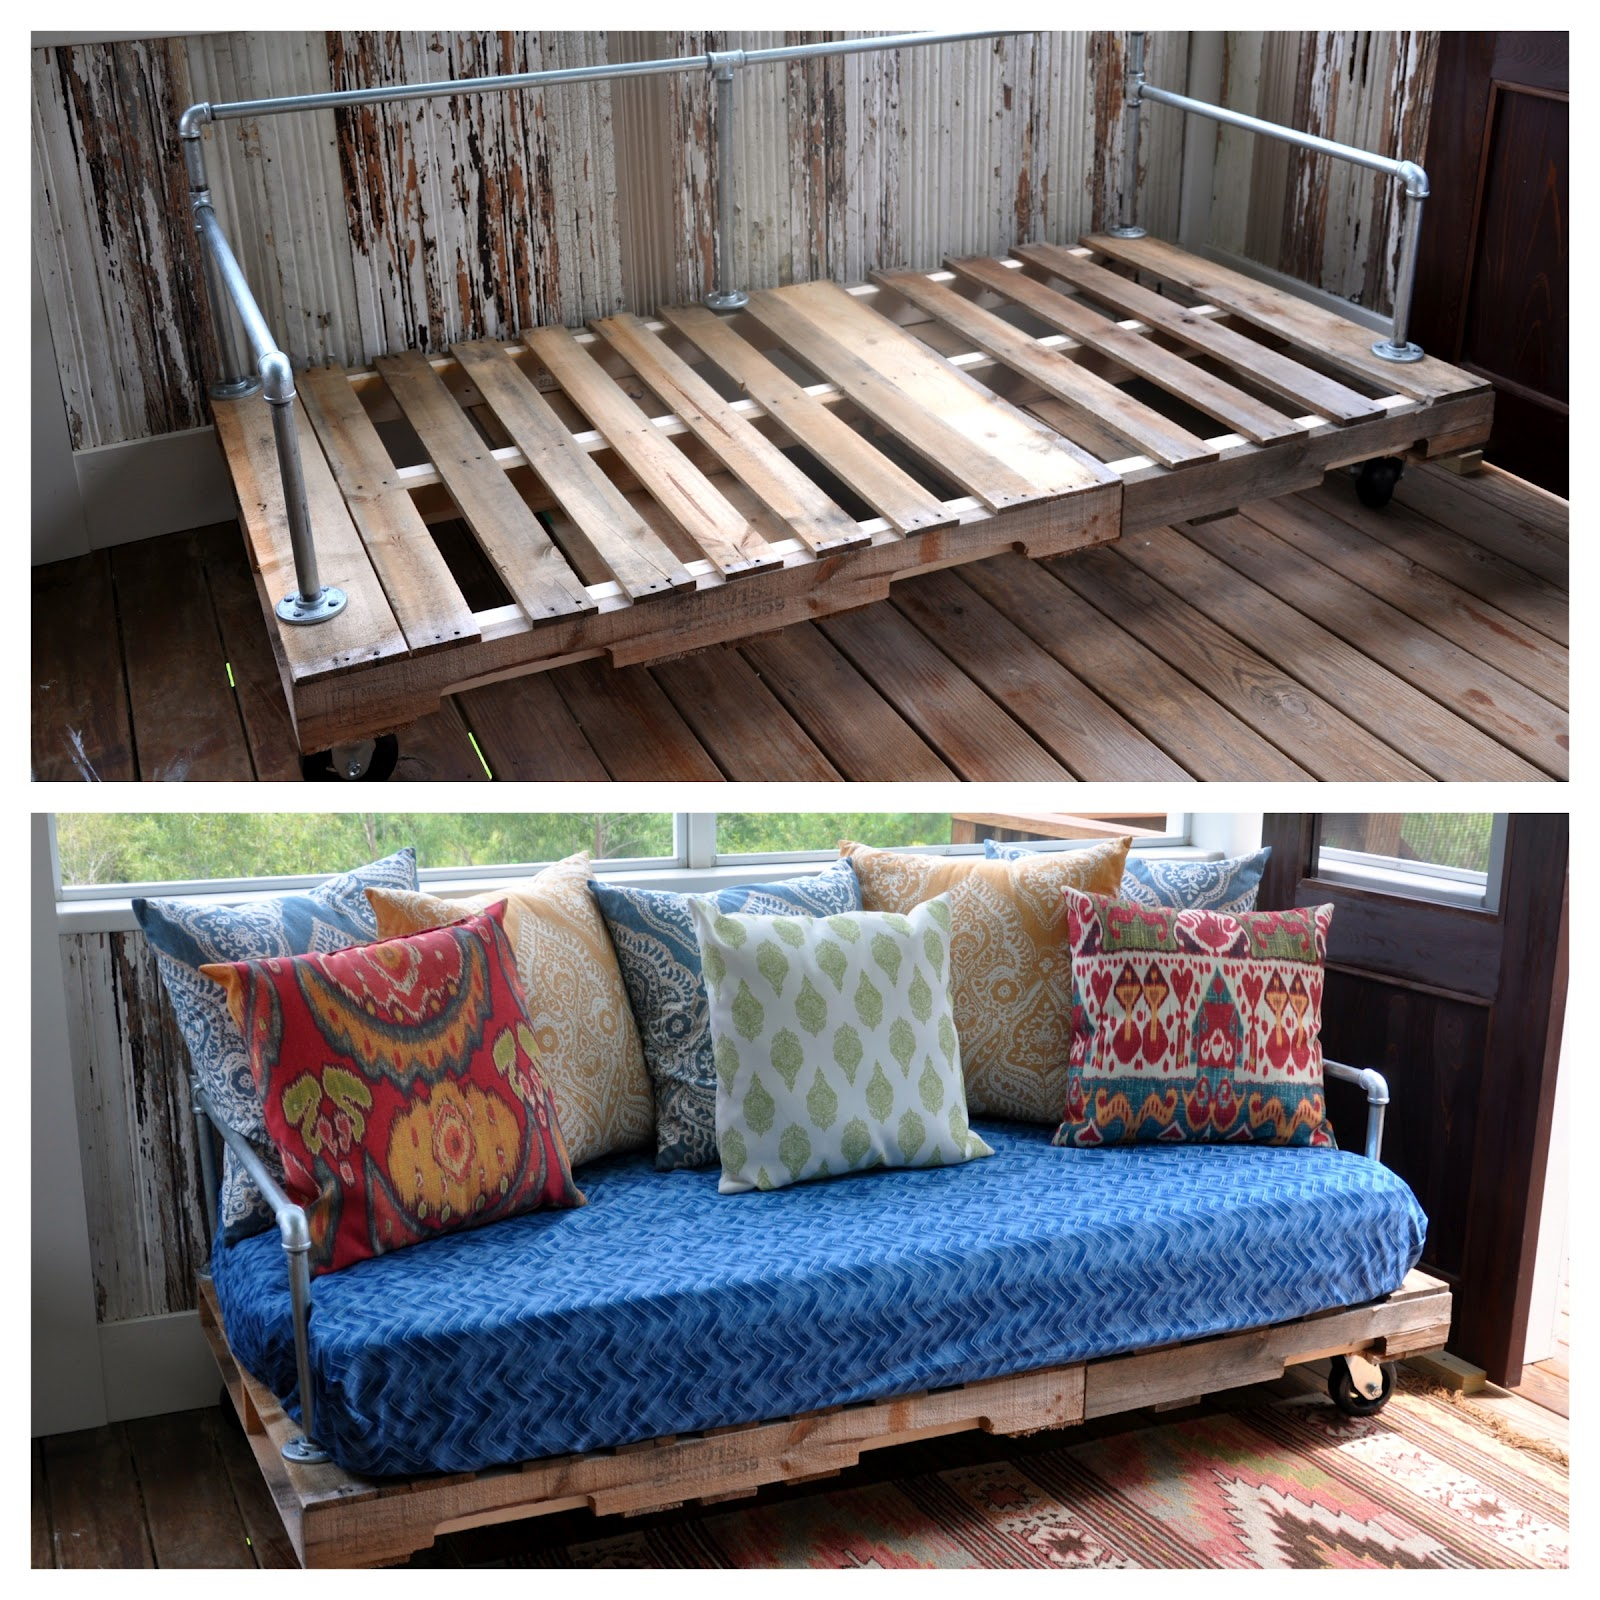 My First Pinterest Project Pallet Couch Fishsmith3 39 S Blog